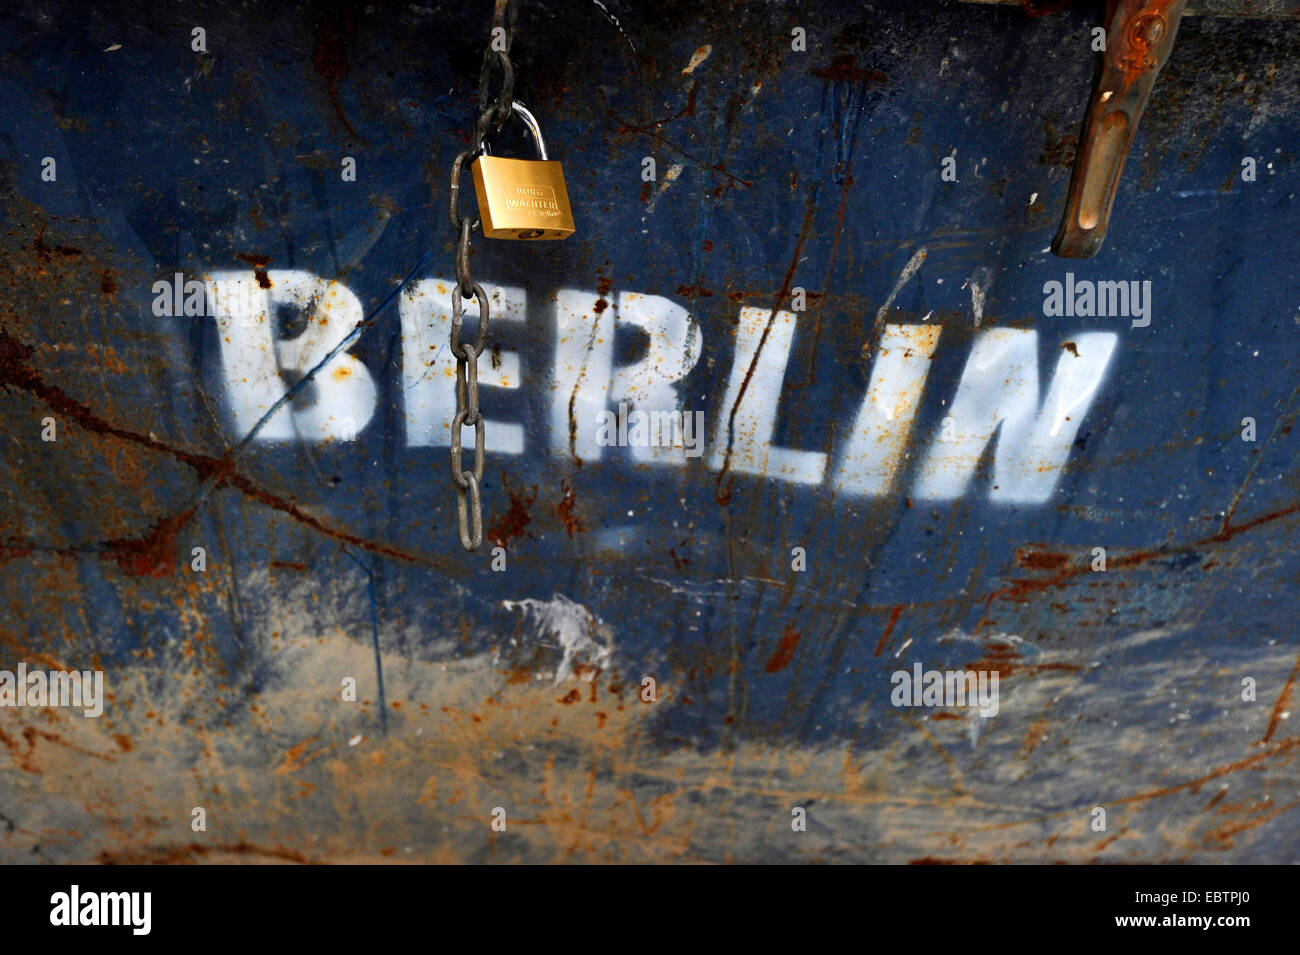 padlock at a garbage can labeled 'Berlin', Germany, Berlin - Stock Image